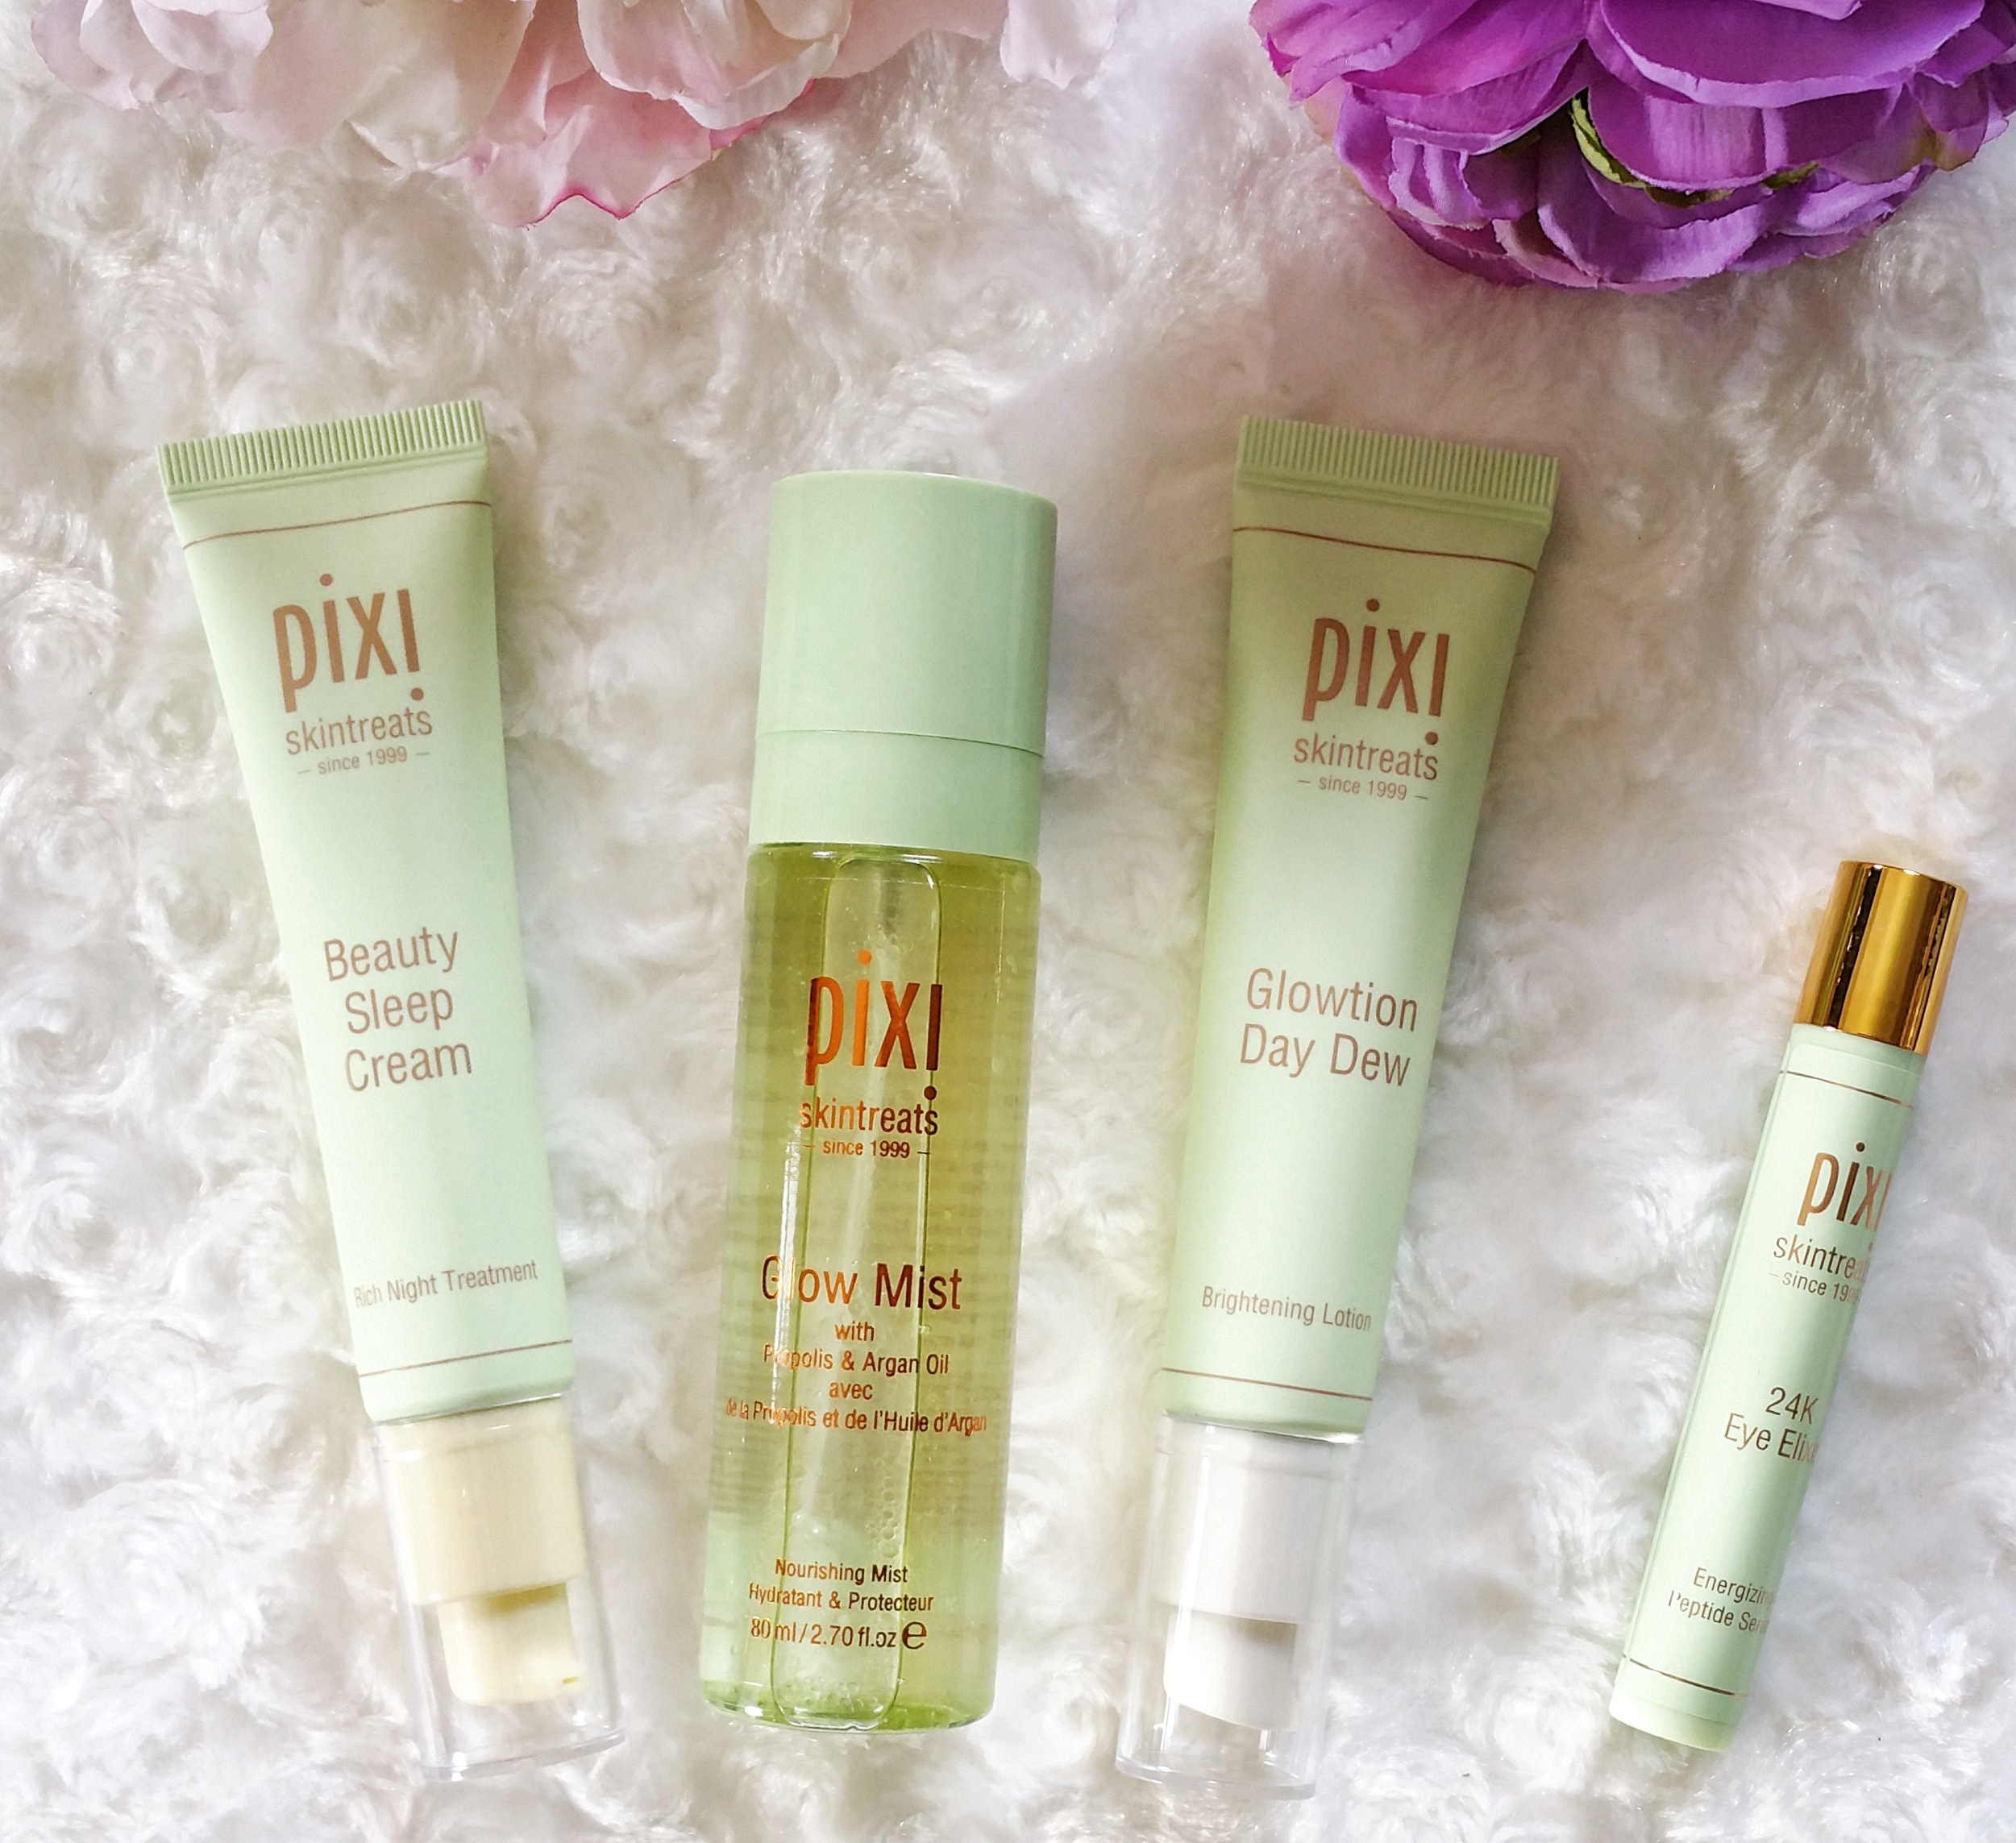 pixi beauty, pixi, skin care, beauty, glowtion day dew, glow mist, beauty sleep cream, 24K eye elixir, pixi beauty skin care, pixi skin care, review, beauty review, #pixiglow, pixi glow,